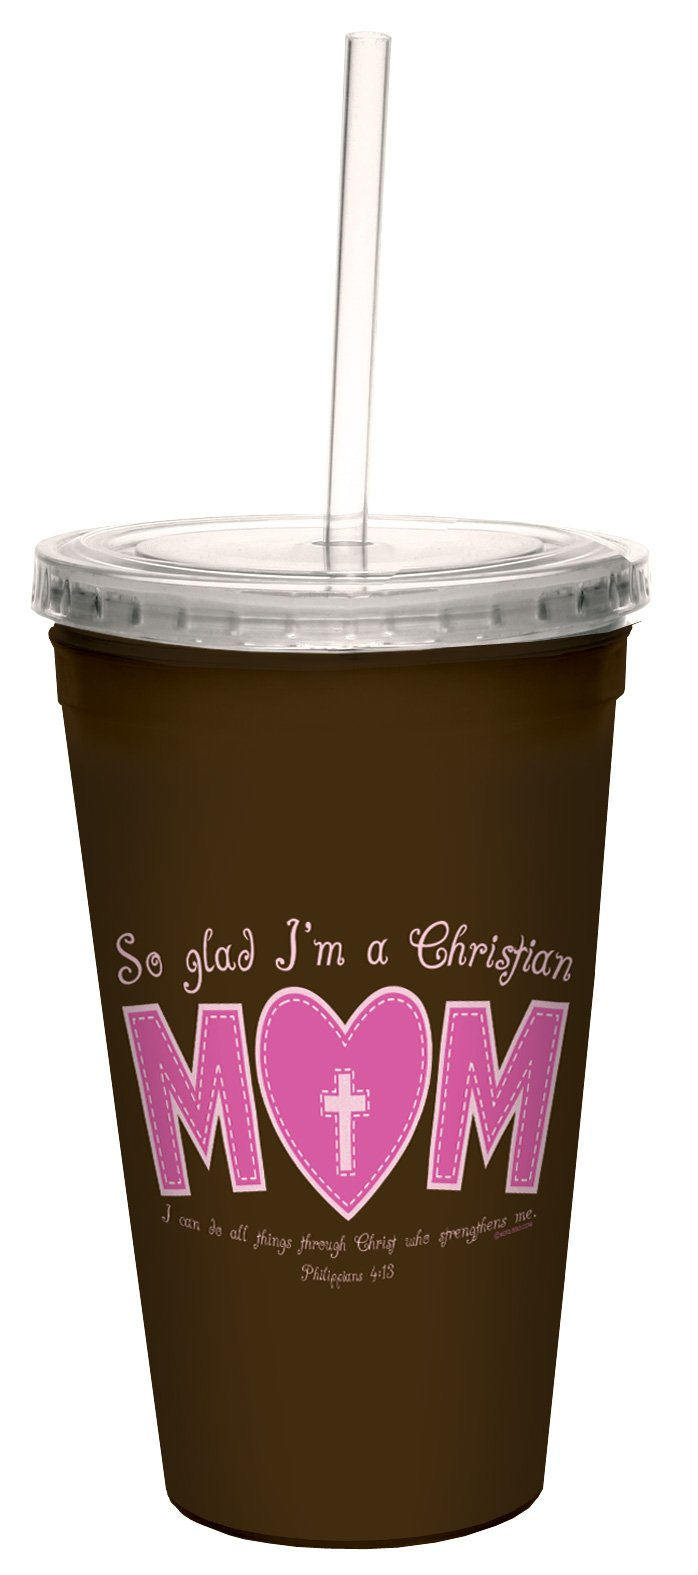 Tree-Free Greetings cc34337 So Glad Mom: Philippians 4:13 Artful Traveler Double-Walled Cool Cup with Reusable Straw, 16-Ounce